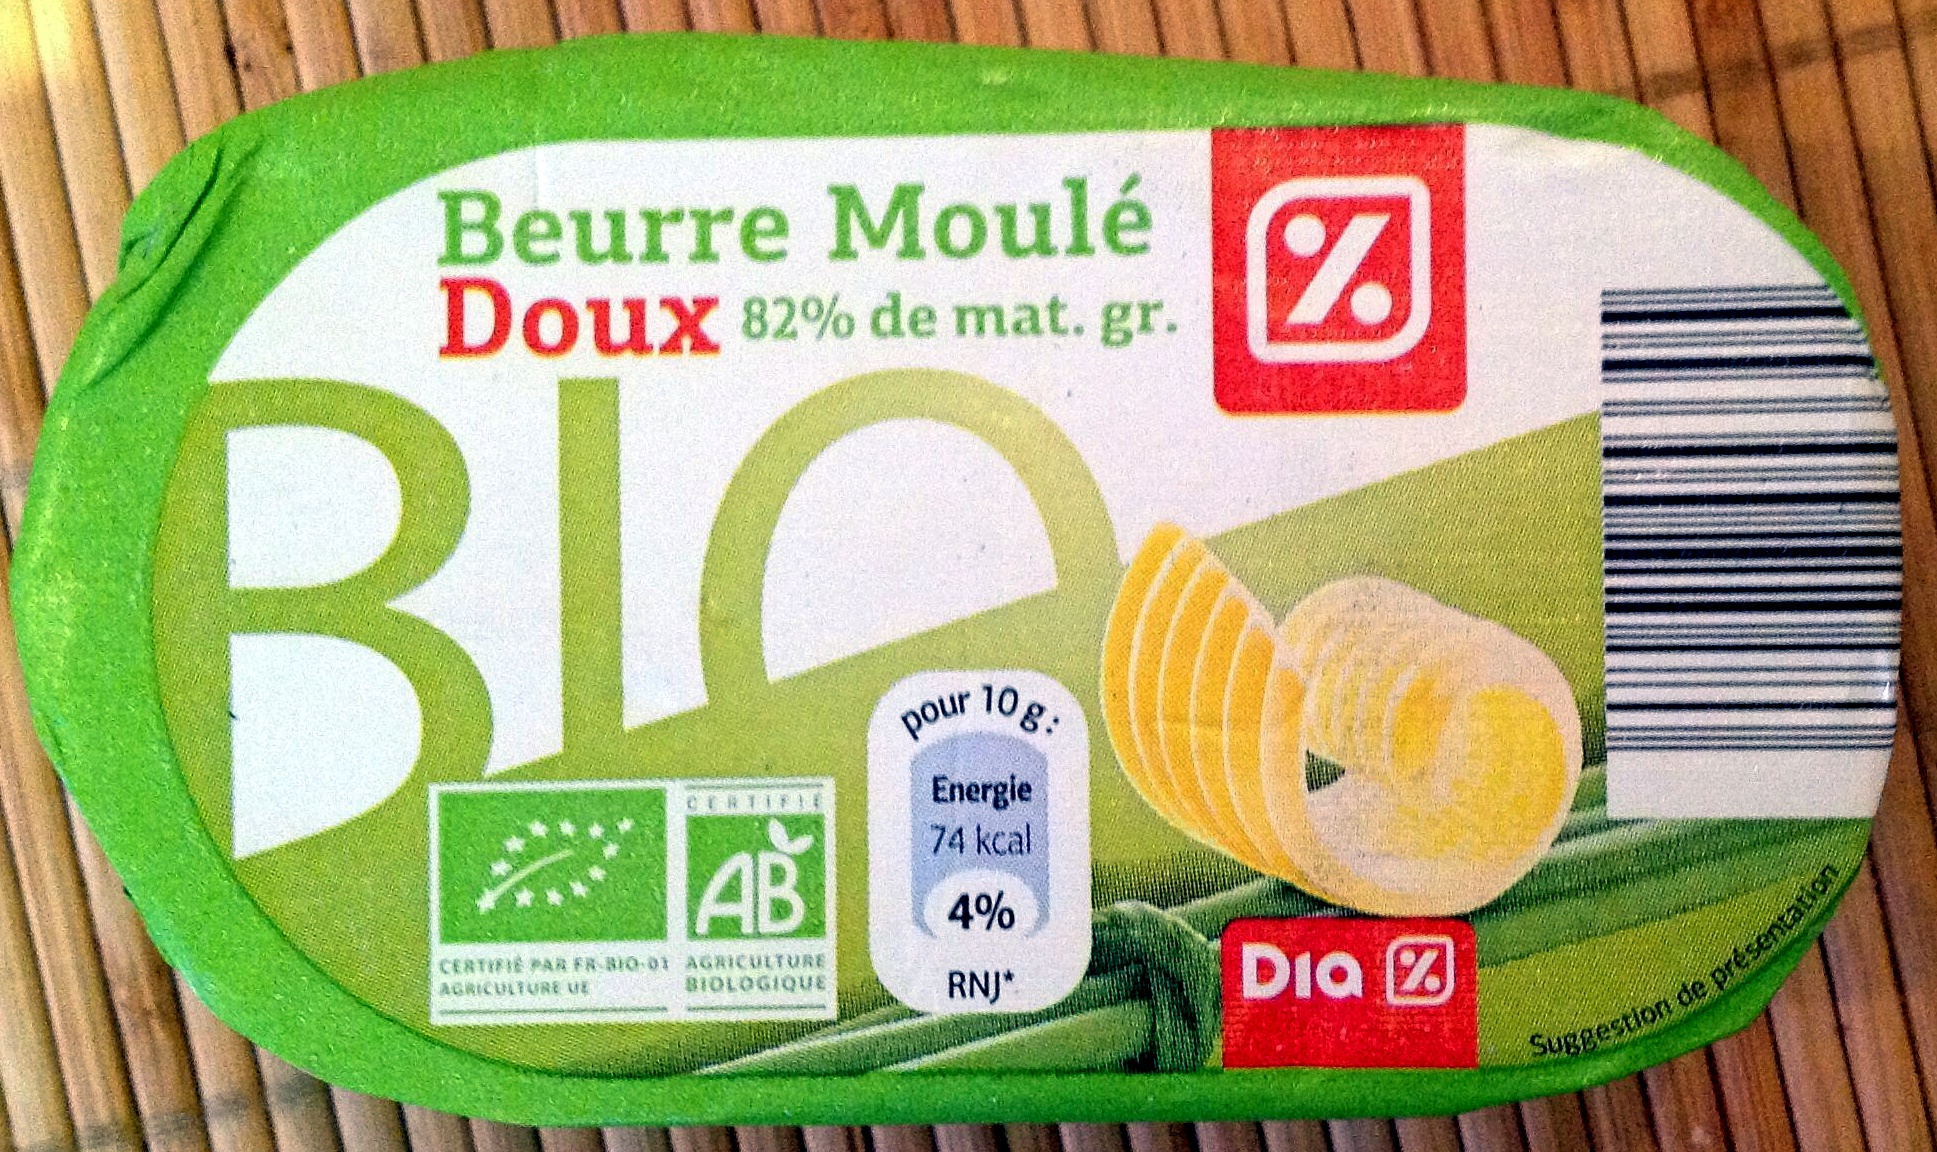 Beurre moulé doux bio (82% MG) - Product